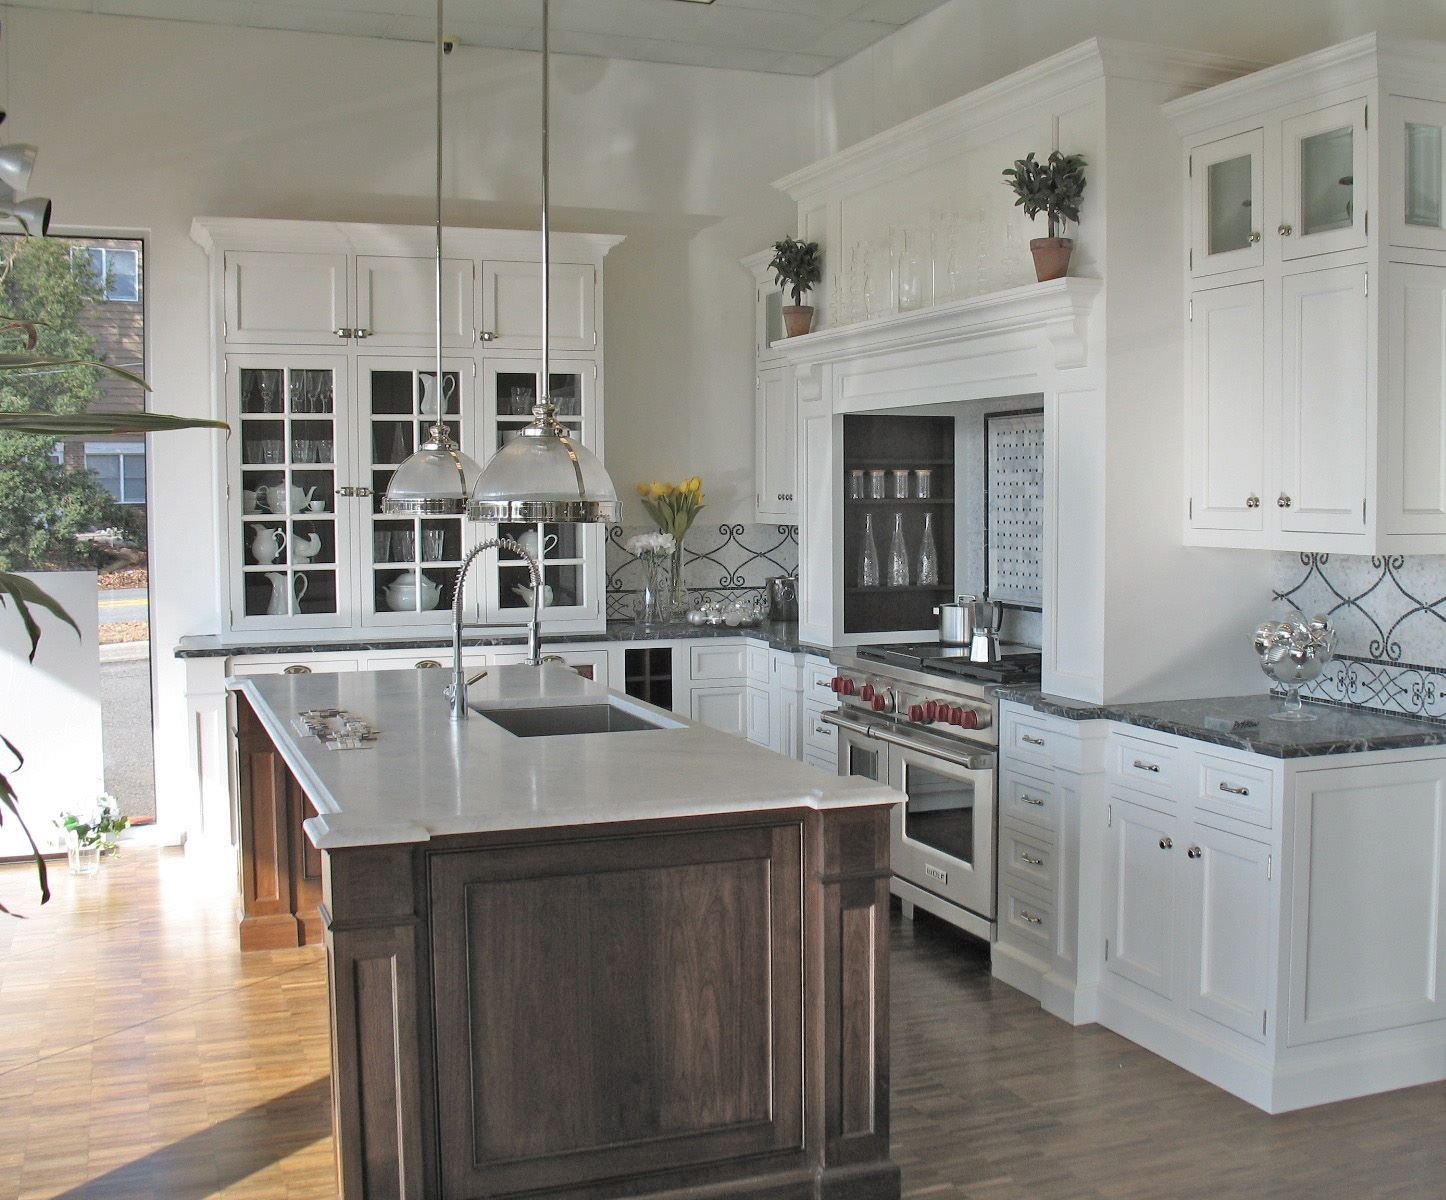 Modern traditional kitchen cabinets design ideas for Traditional kitchen design